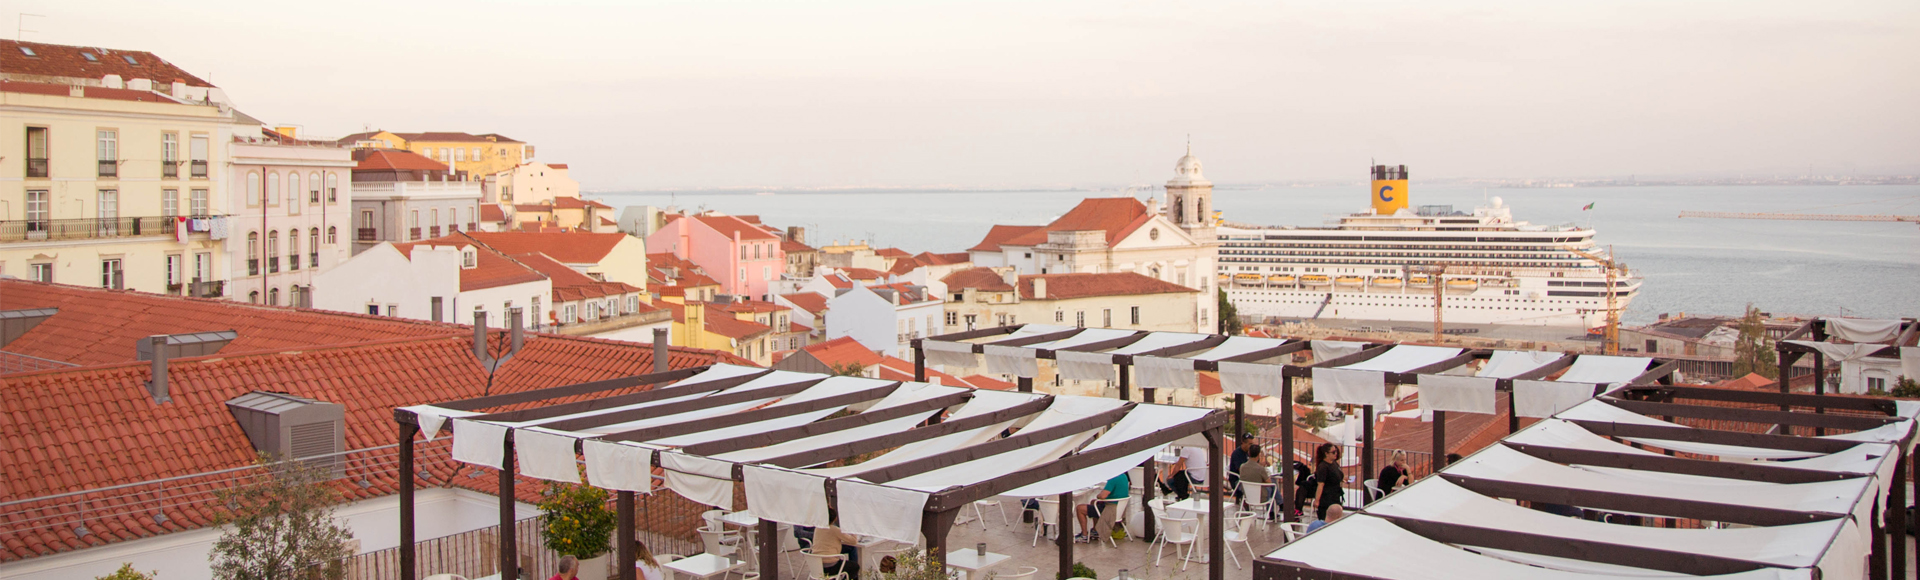 "Lisbon: 8 of the City's Most ""Instagrammable"" Places"